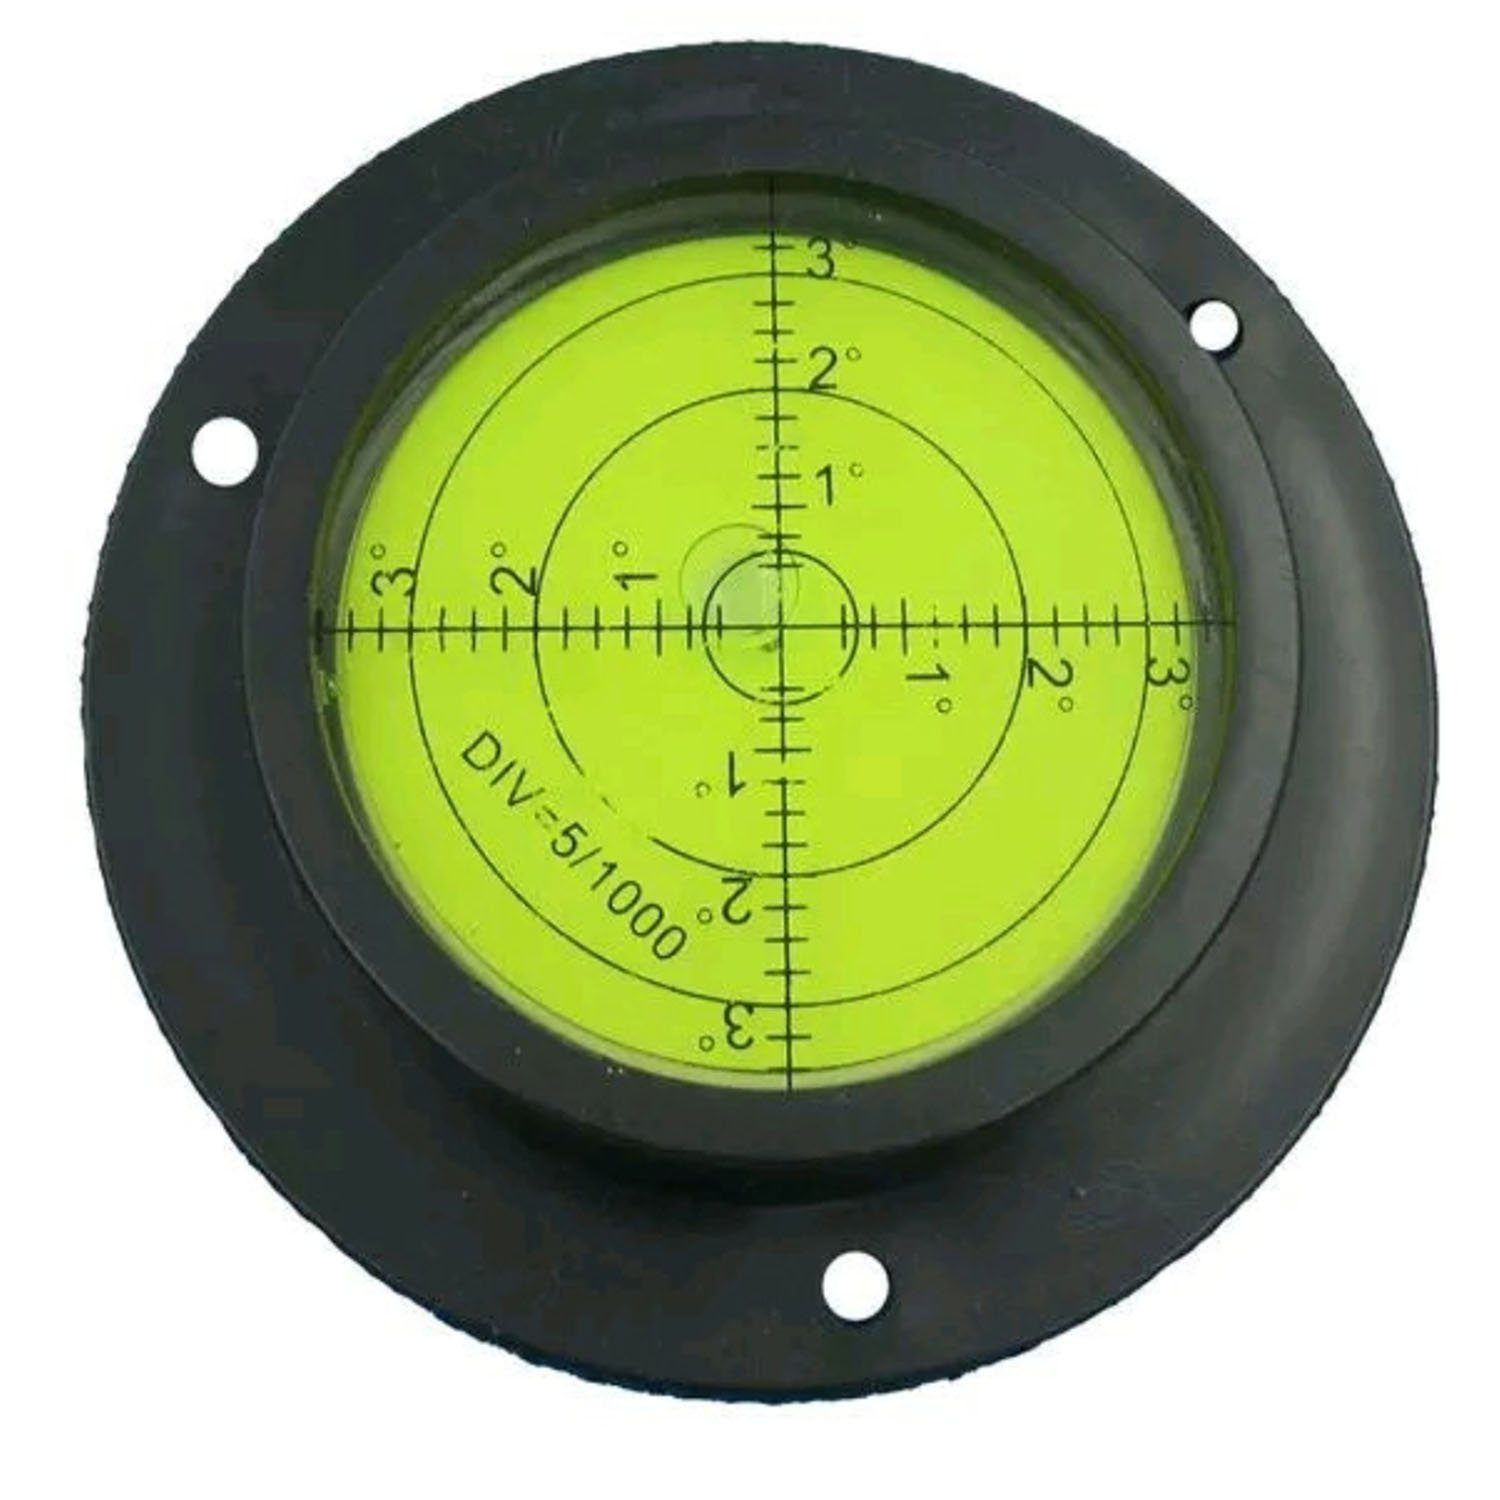 90mm Heavy Duty High Accuracy Bulls Eye Level Bubble Spirit Level Rv Black Green With Mounting Holes Bubbles Energy Efficient Buildings Rv